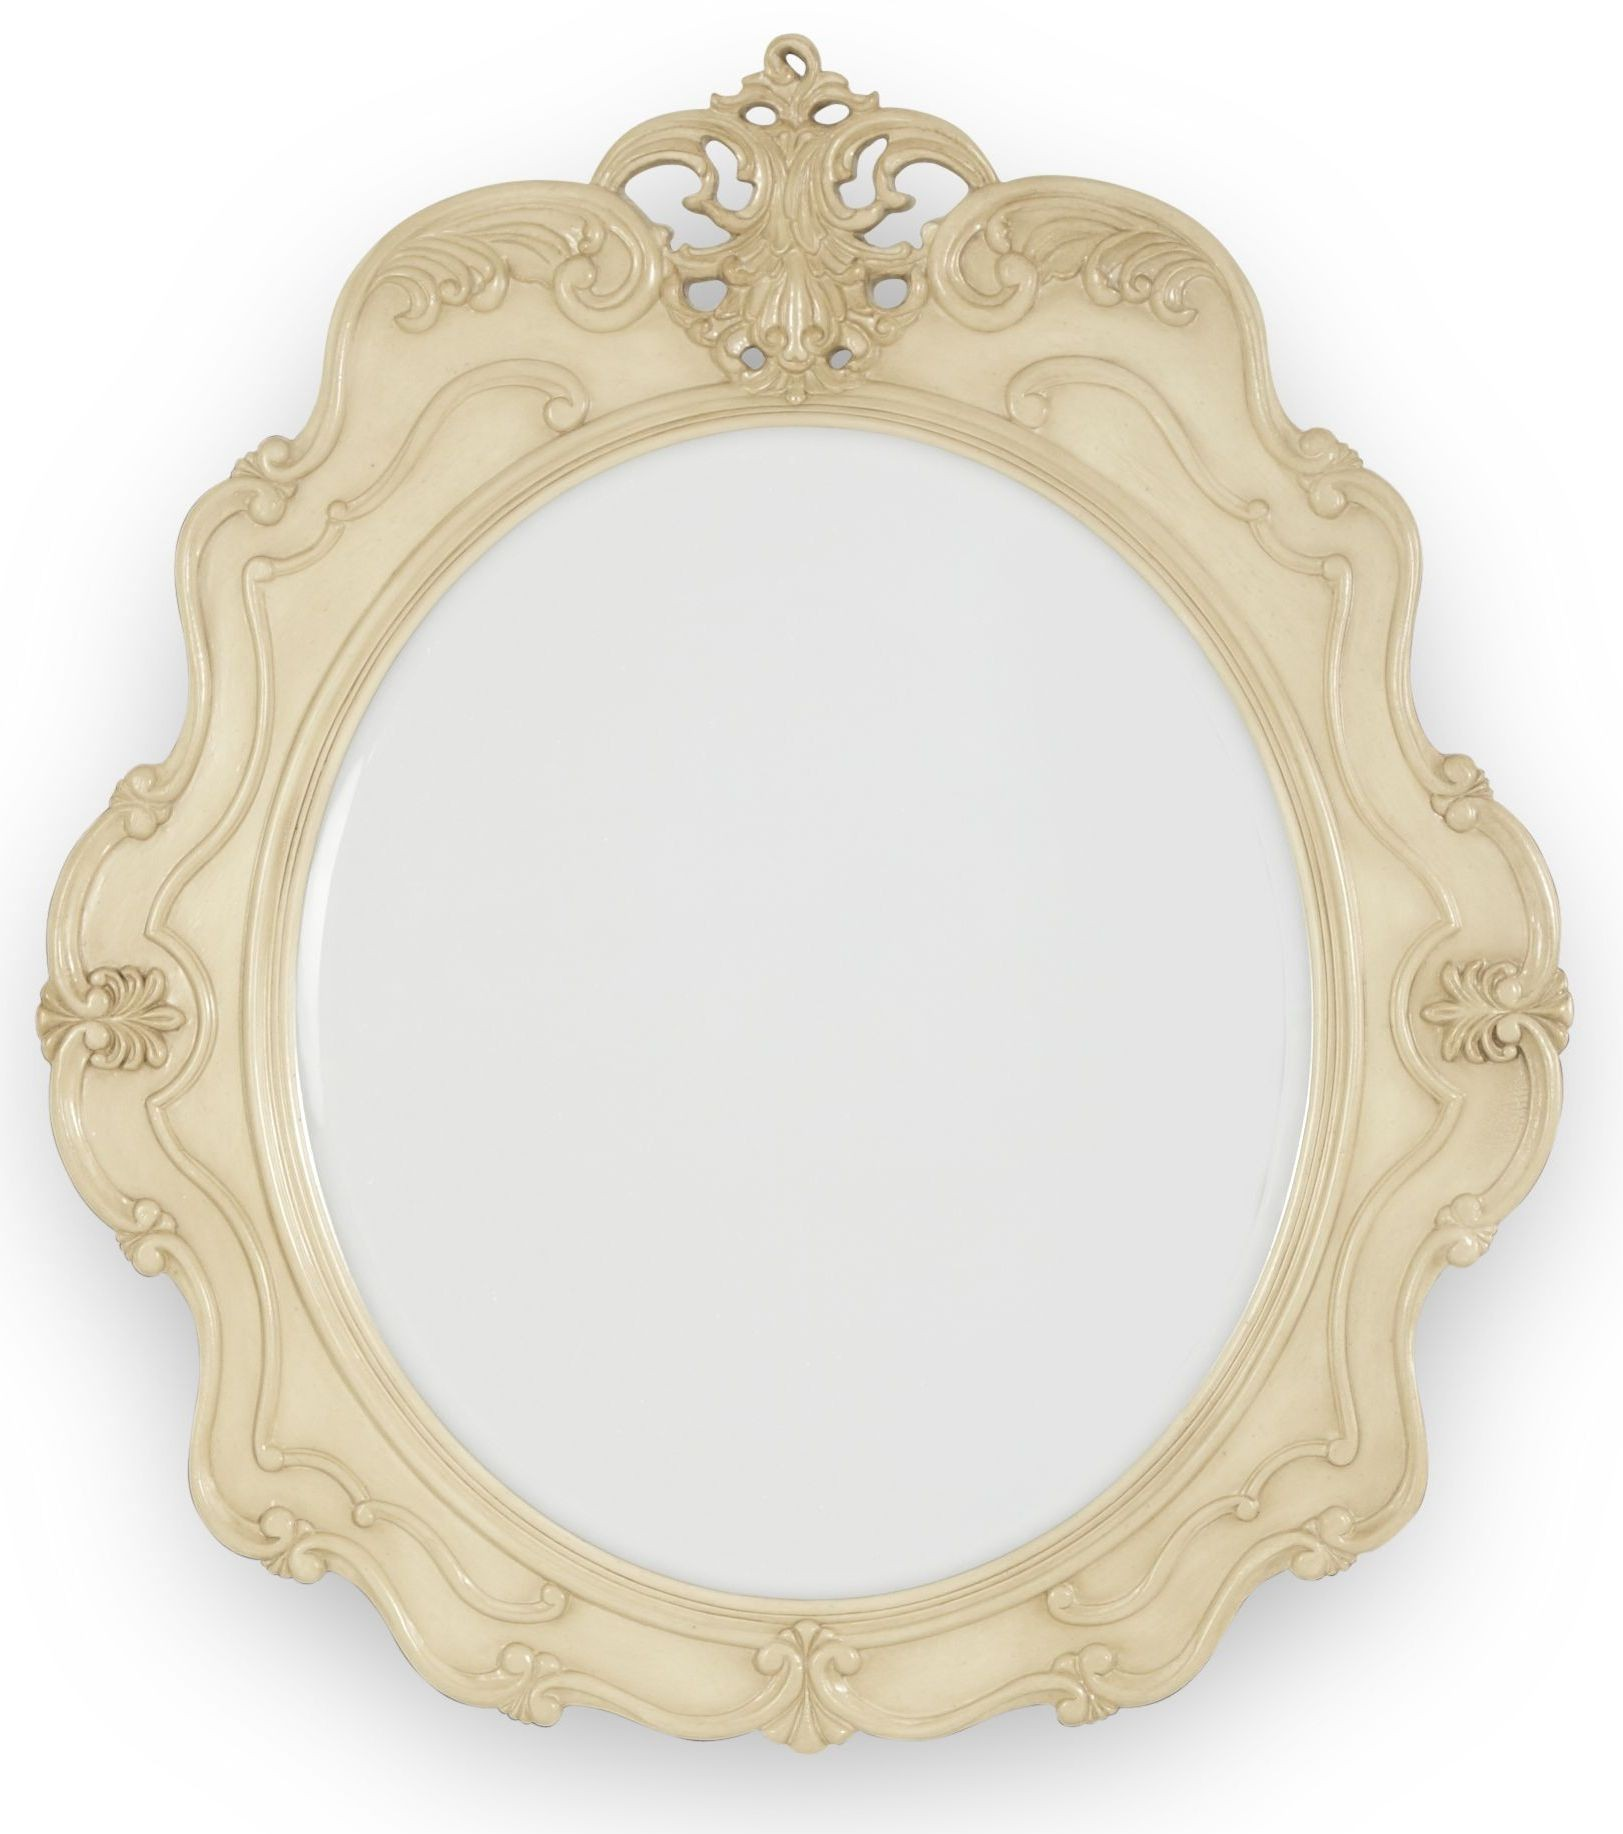 Lavelle Blanc Console Table Mirror From Aico 54260n 04